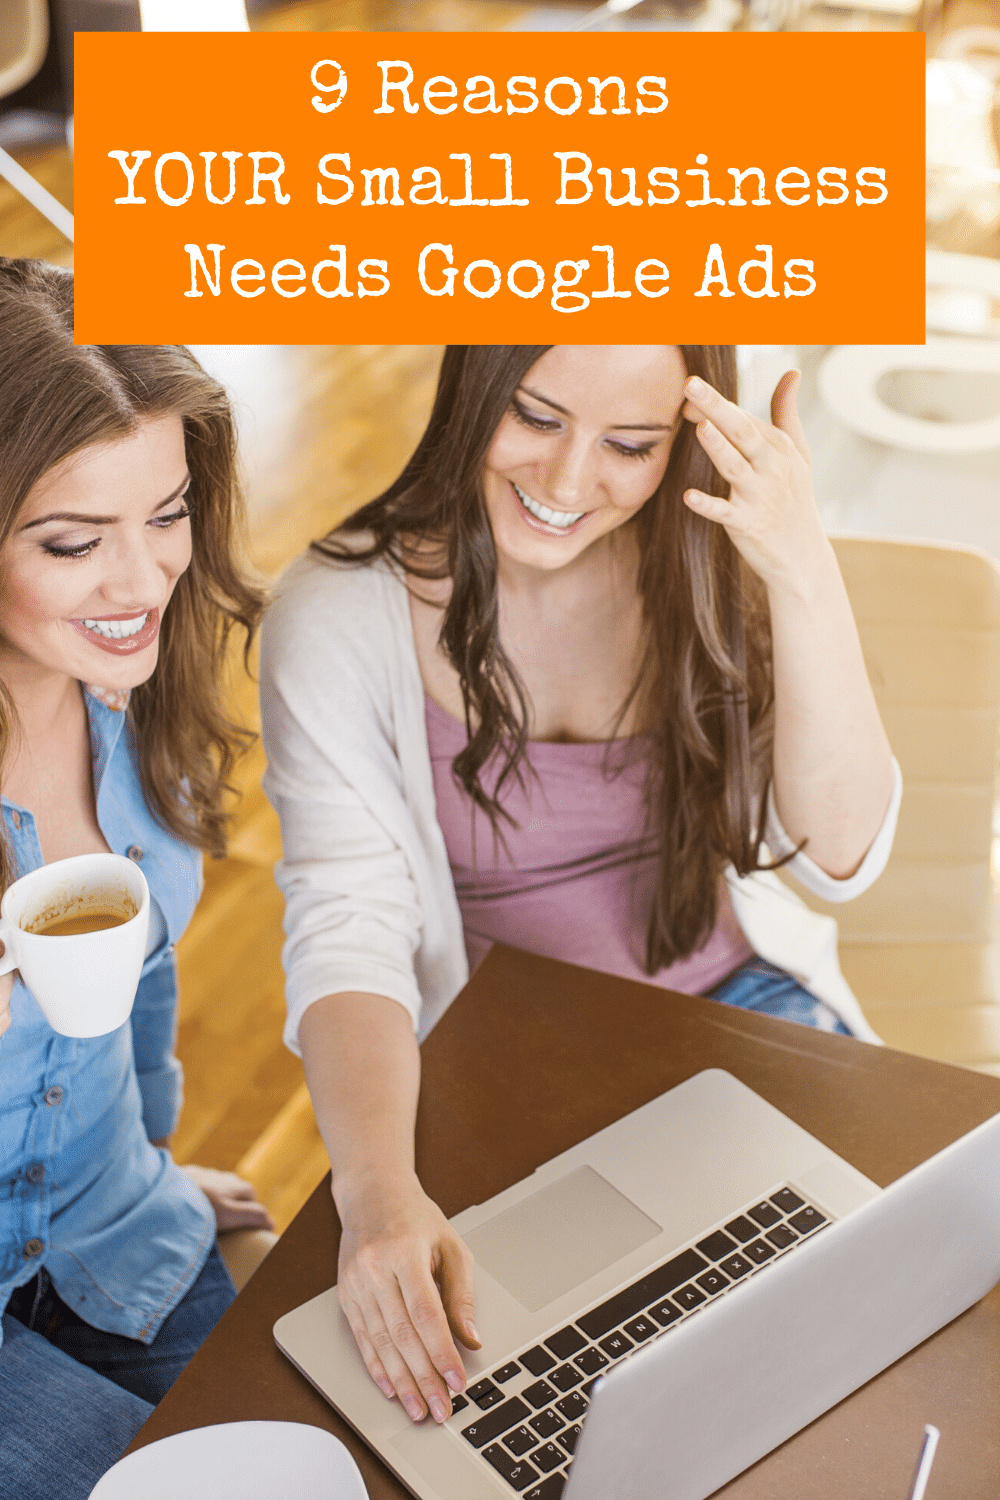 9 Reasons Your Small Business Needs Google Ads